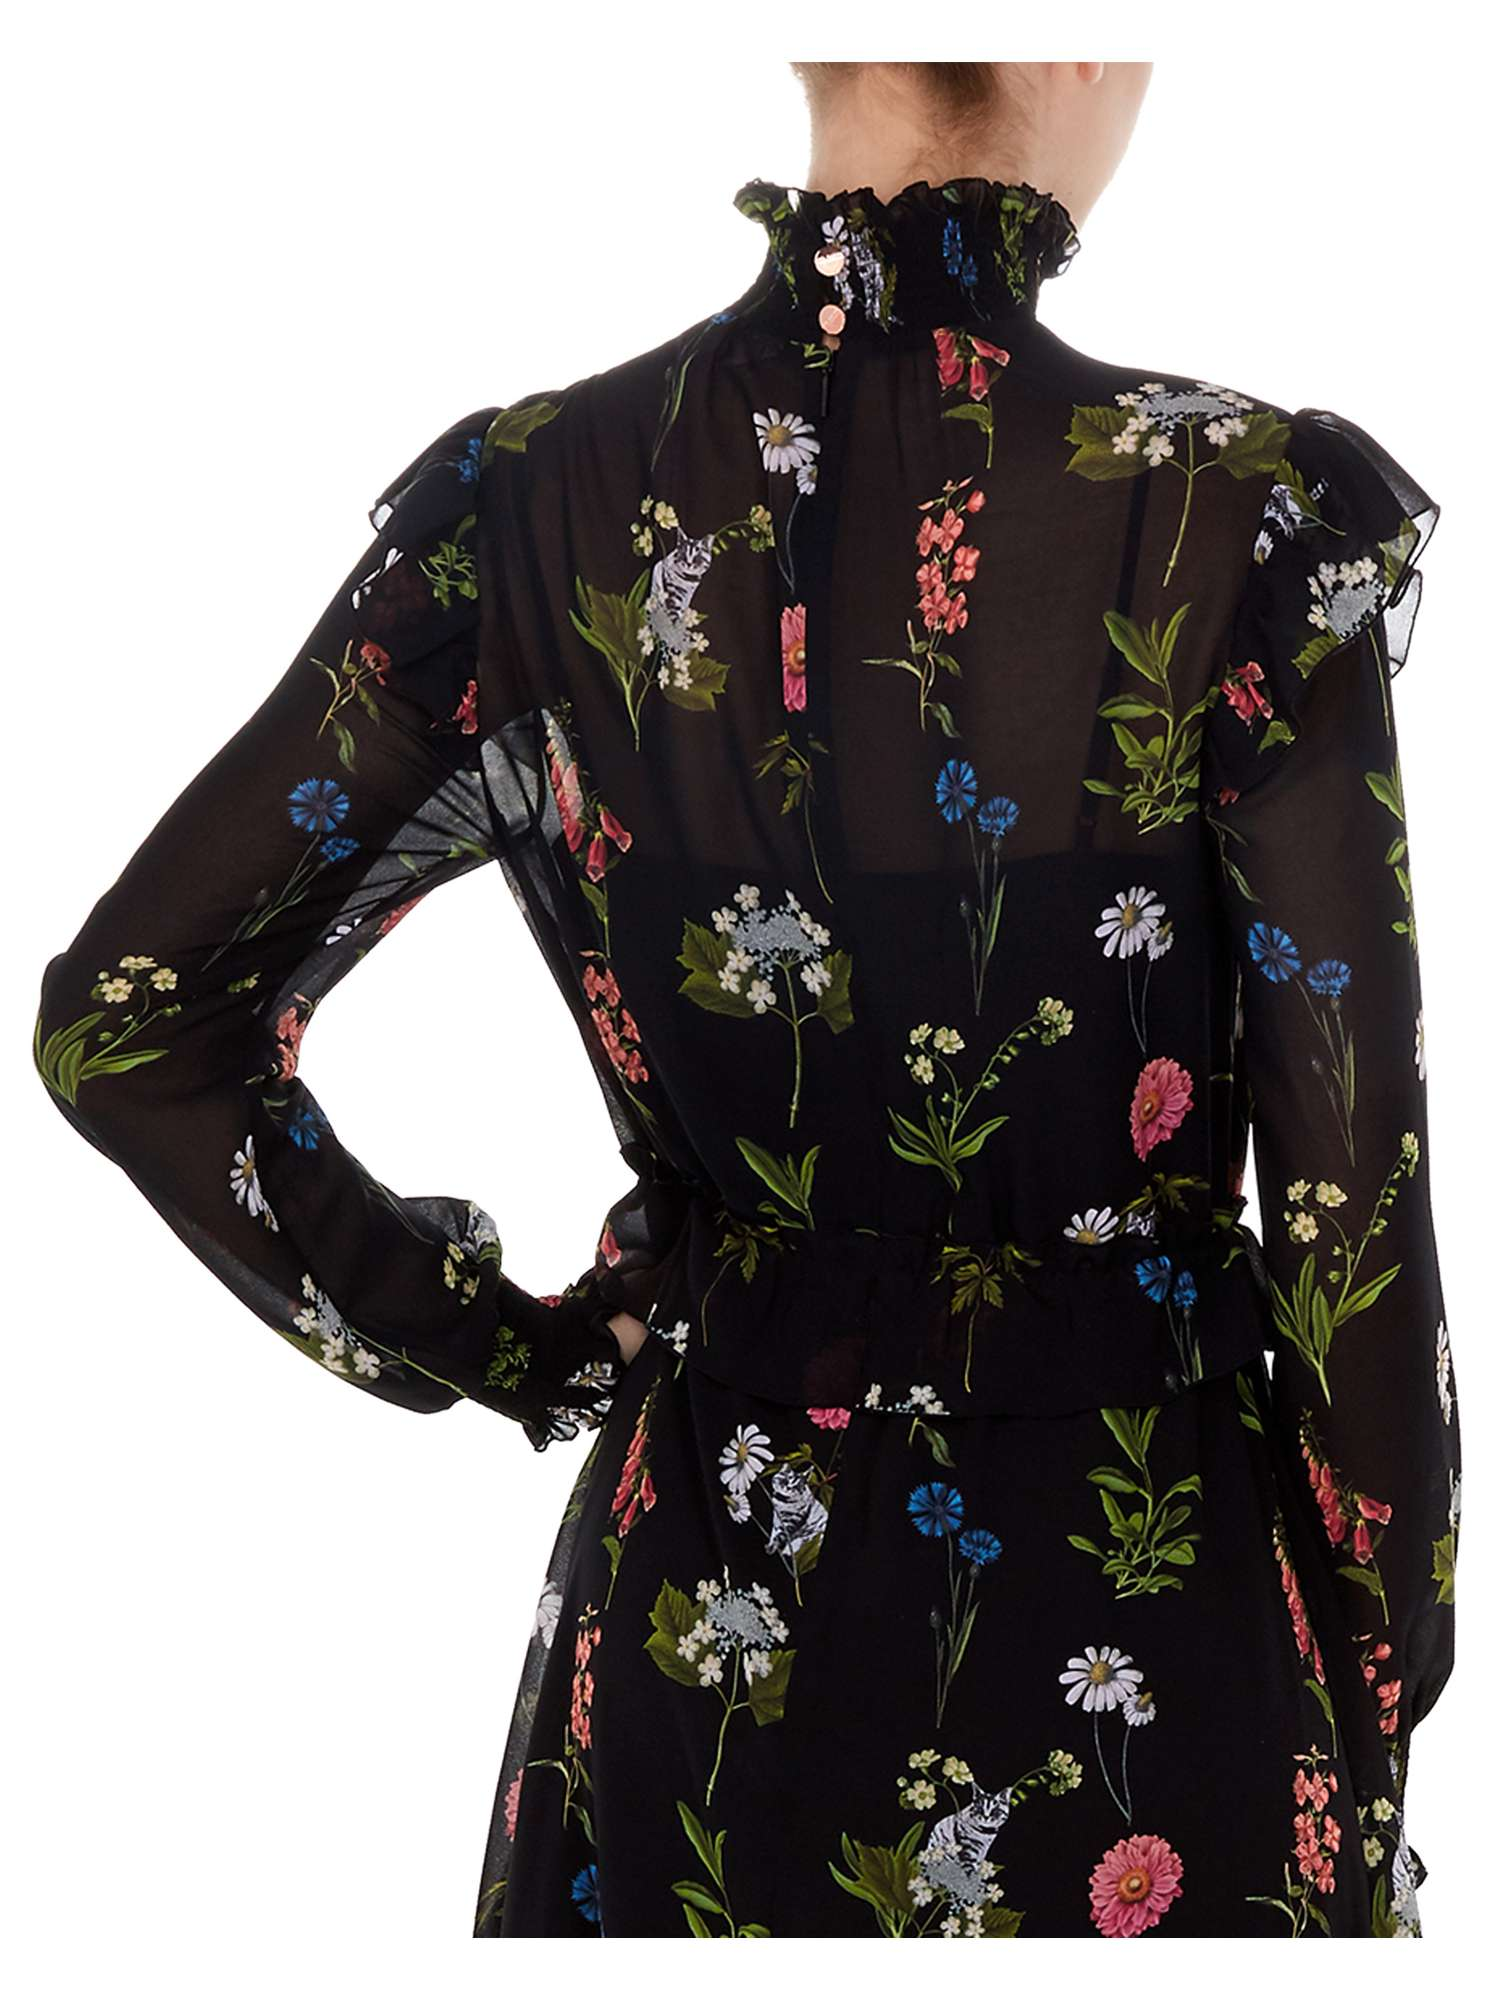 26ce062b22b81a Ted Baker Midi Florence Dress Long Sleeve Simarra rrwTqz at dwell ...